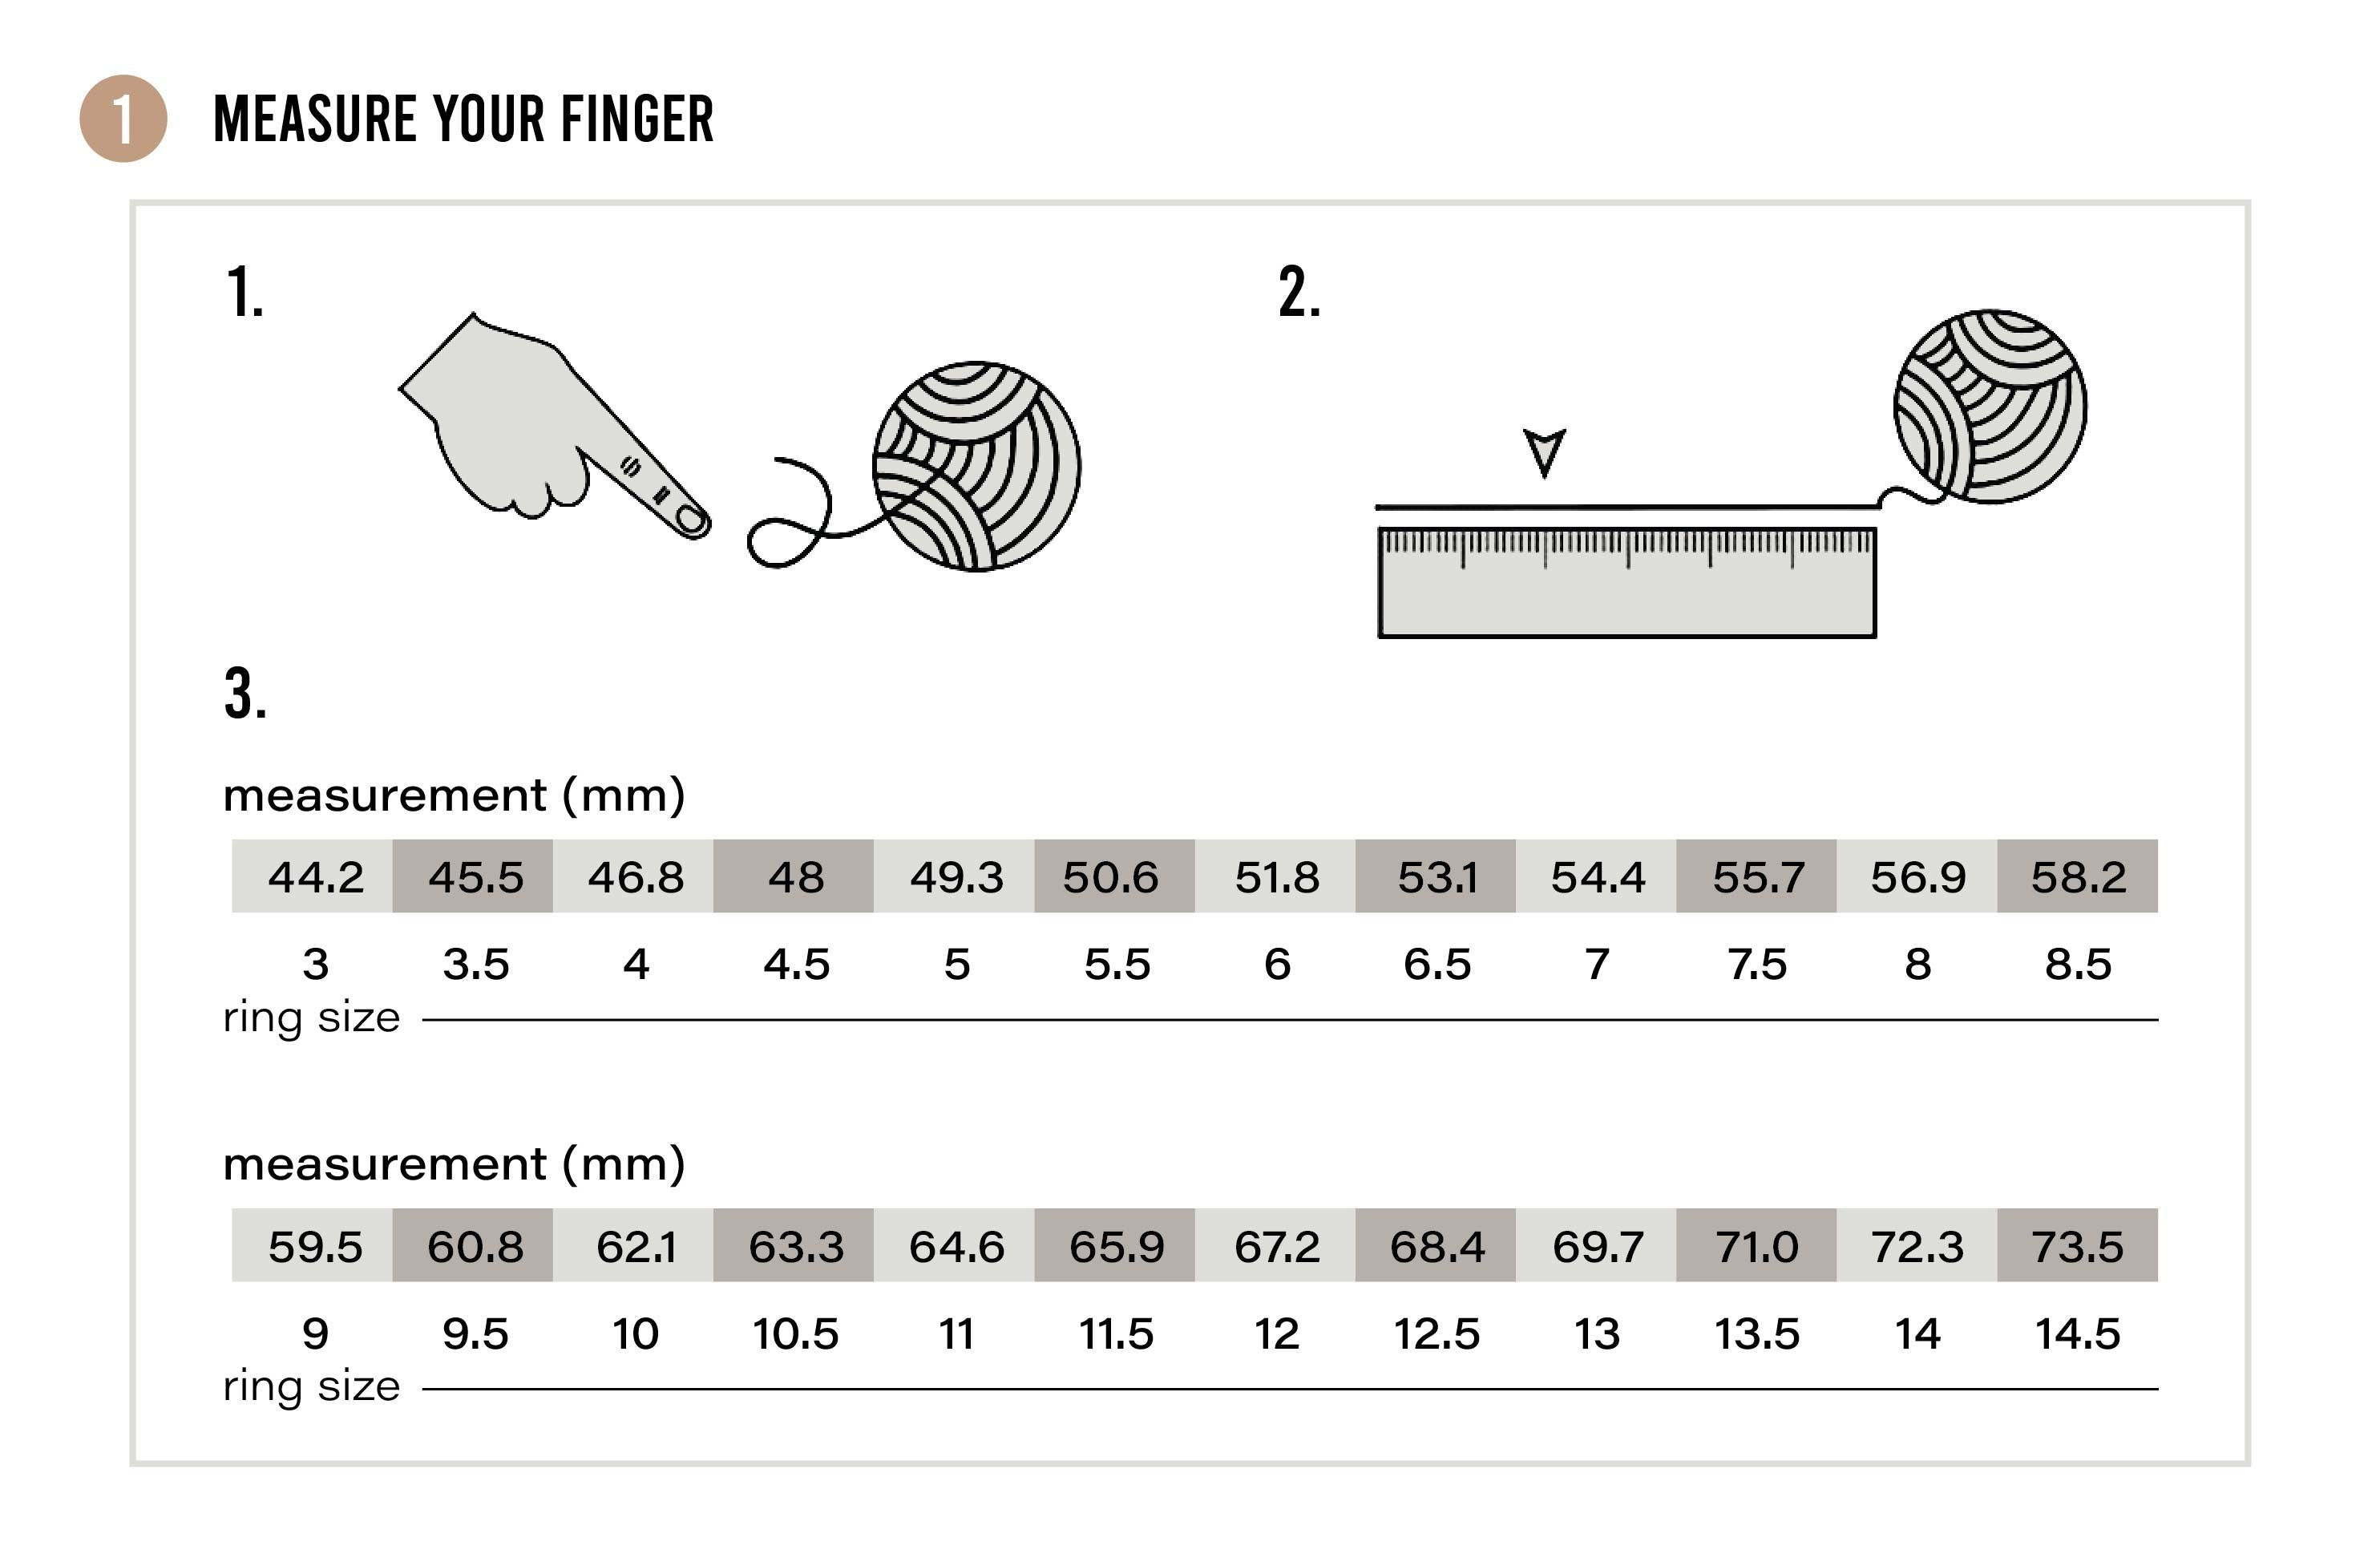 Measure finger size with thread